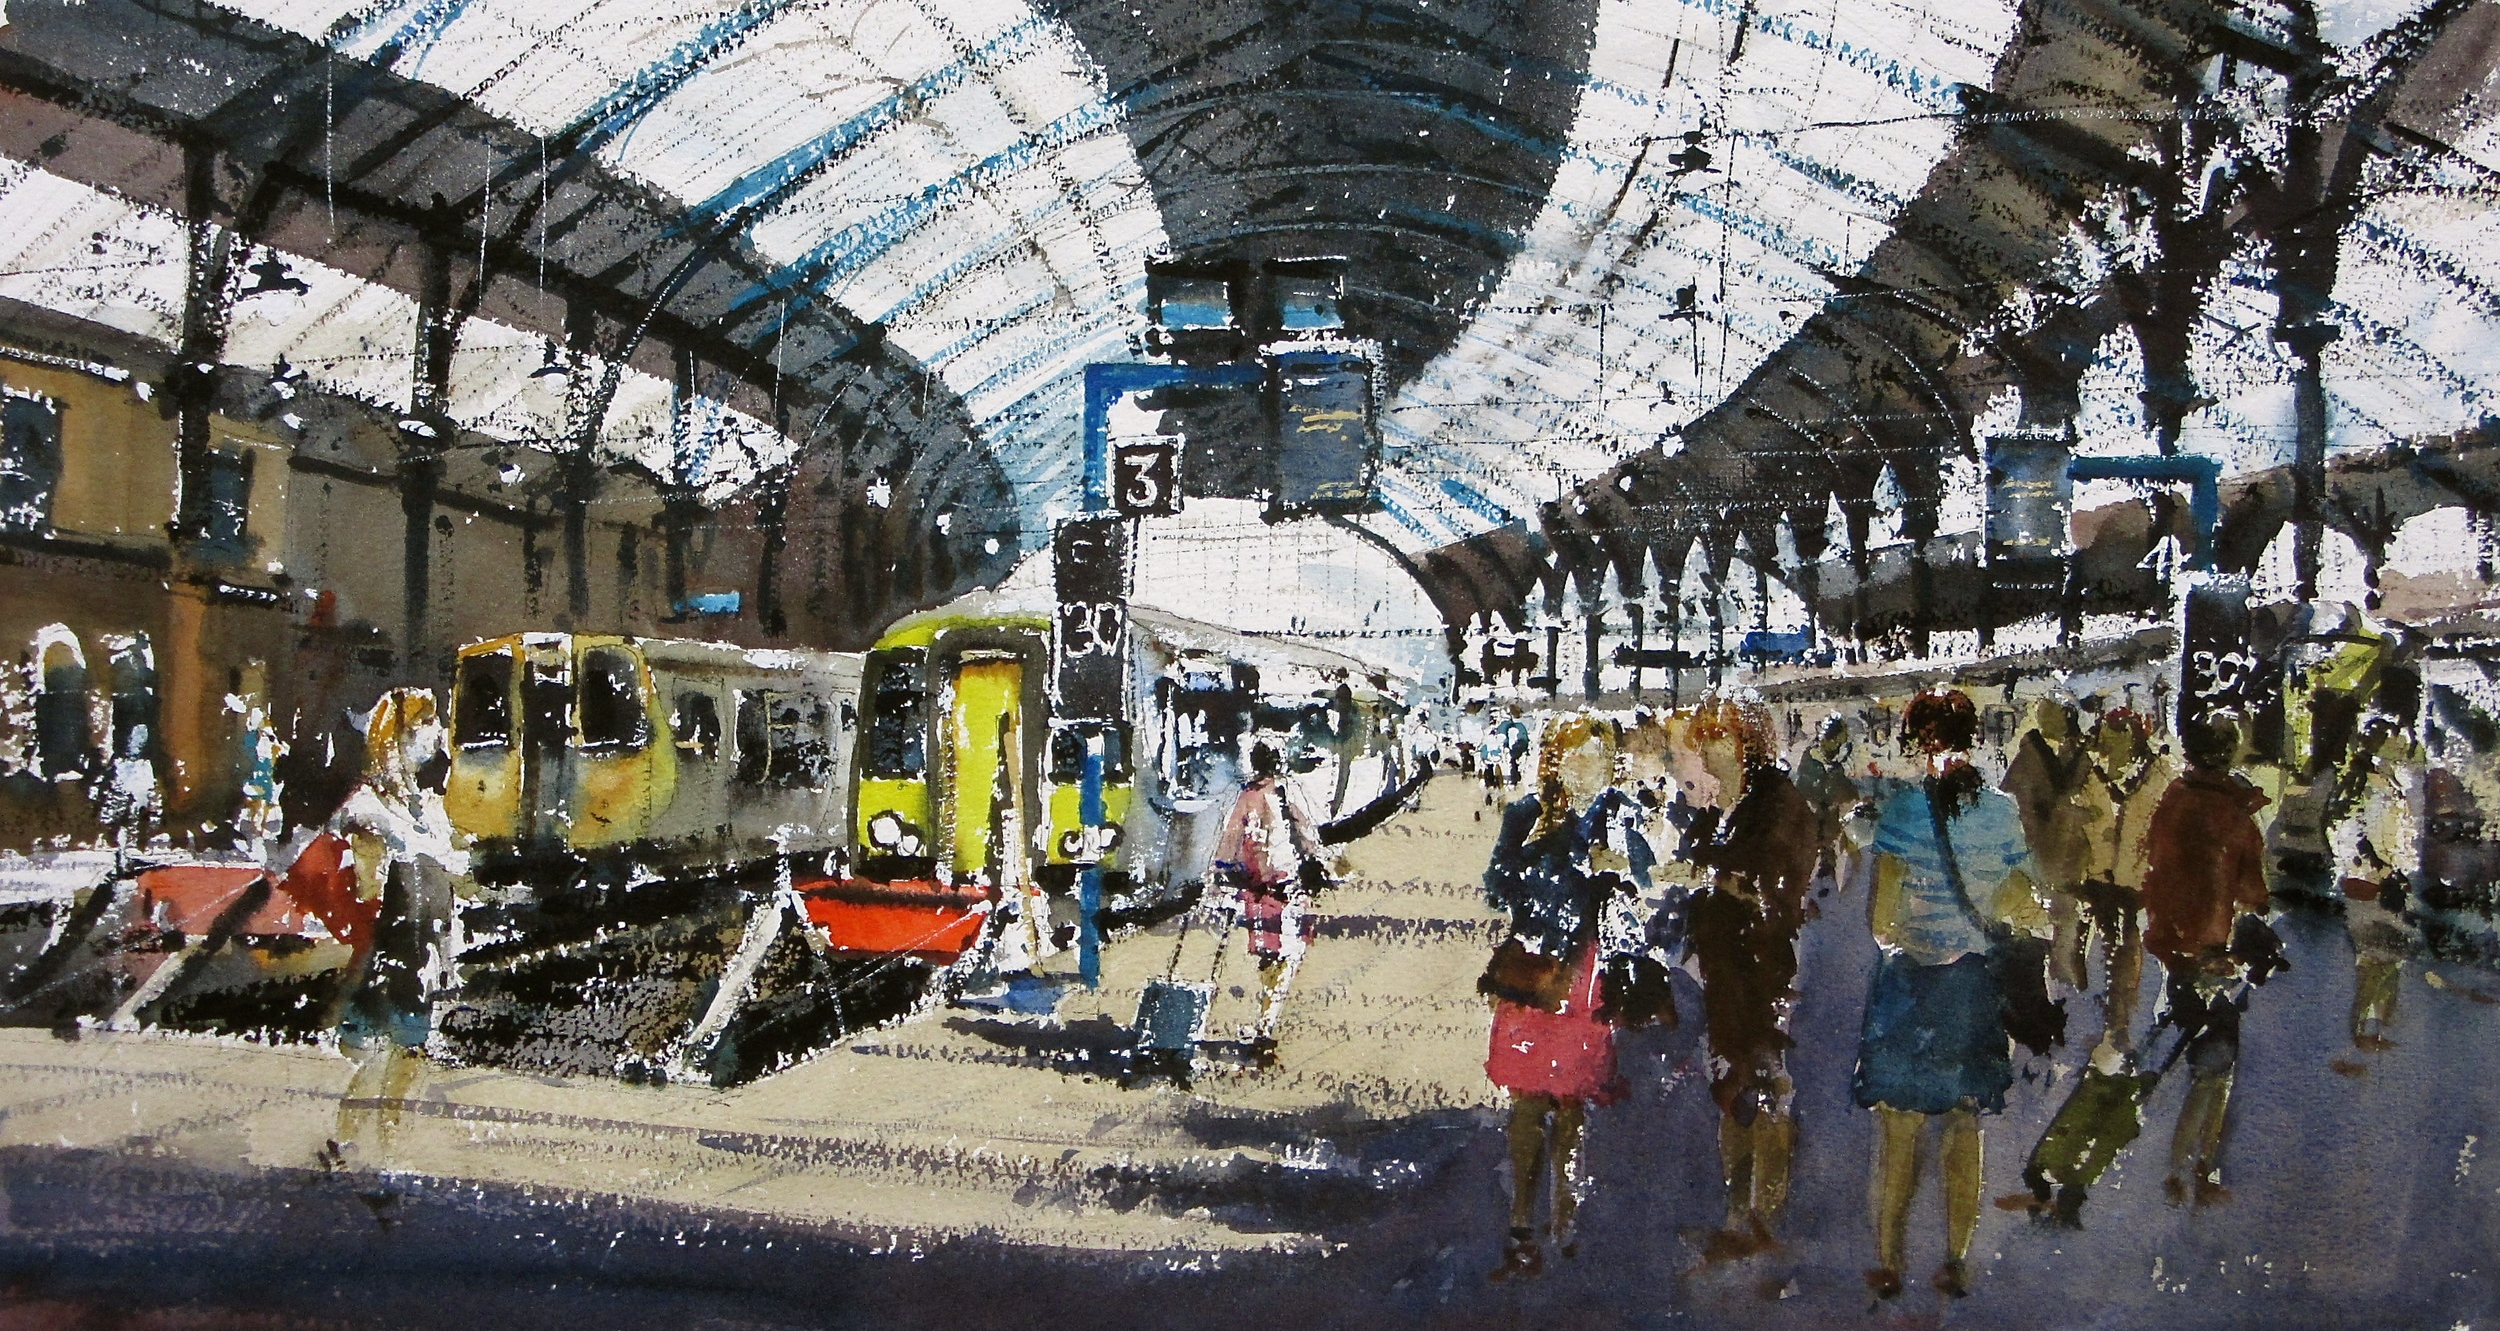 Trippers and Trains Brighton Station: 13 x 24 in: watercolour: £1150